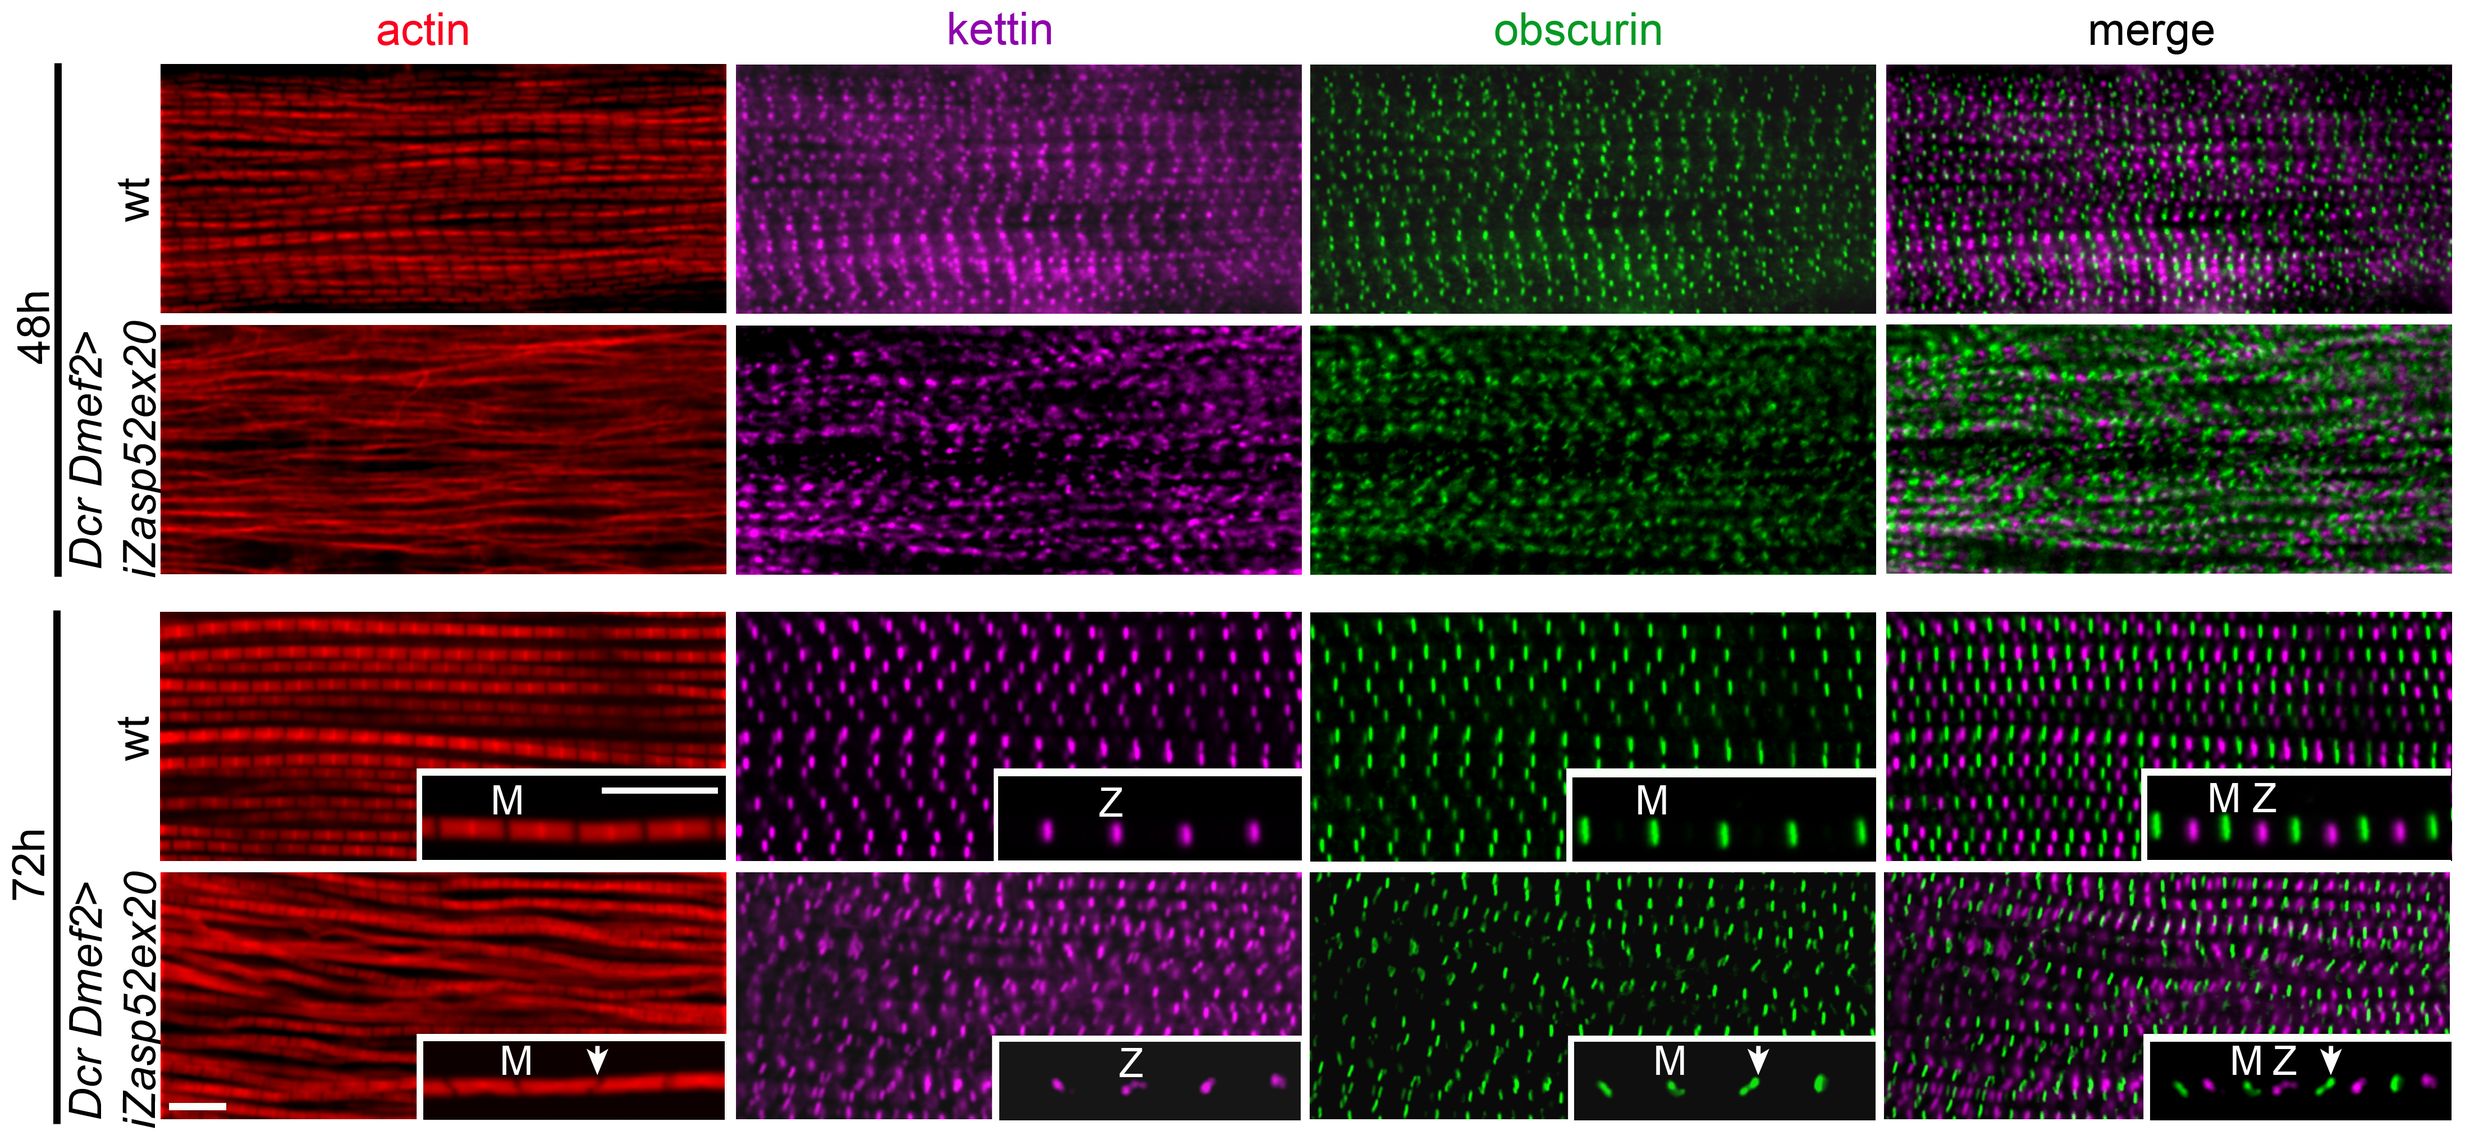 Zasp52 long isoforms are required for pupal myofibril development.